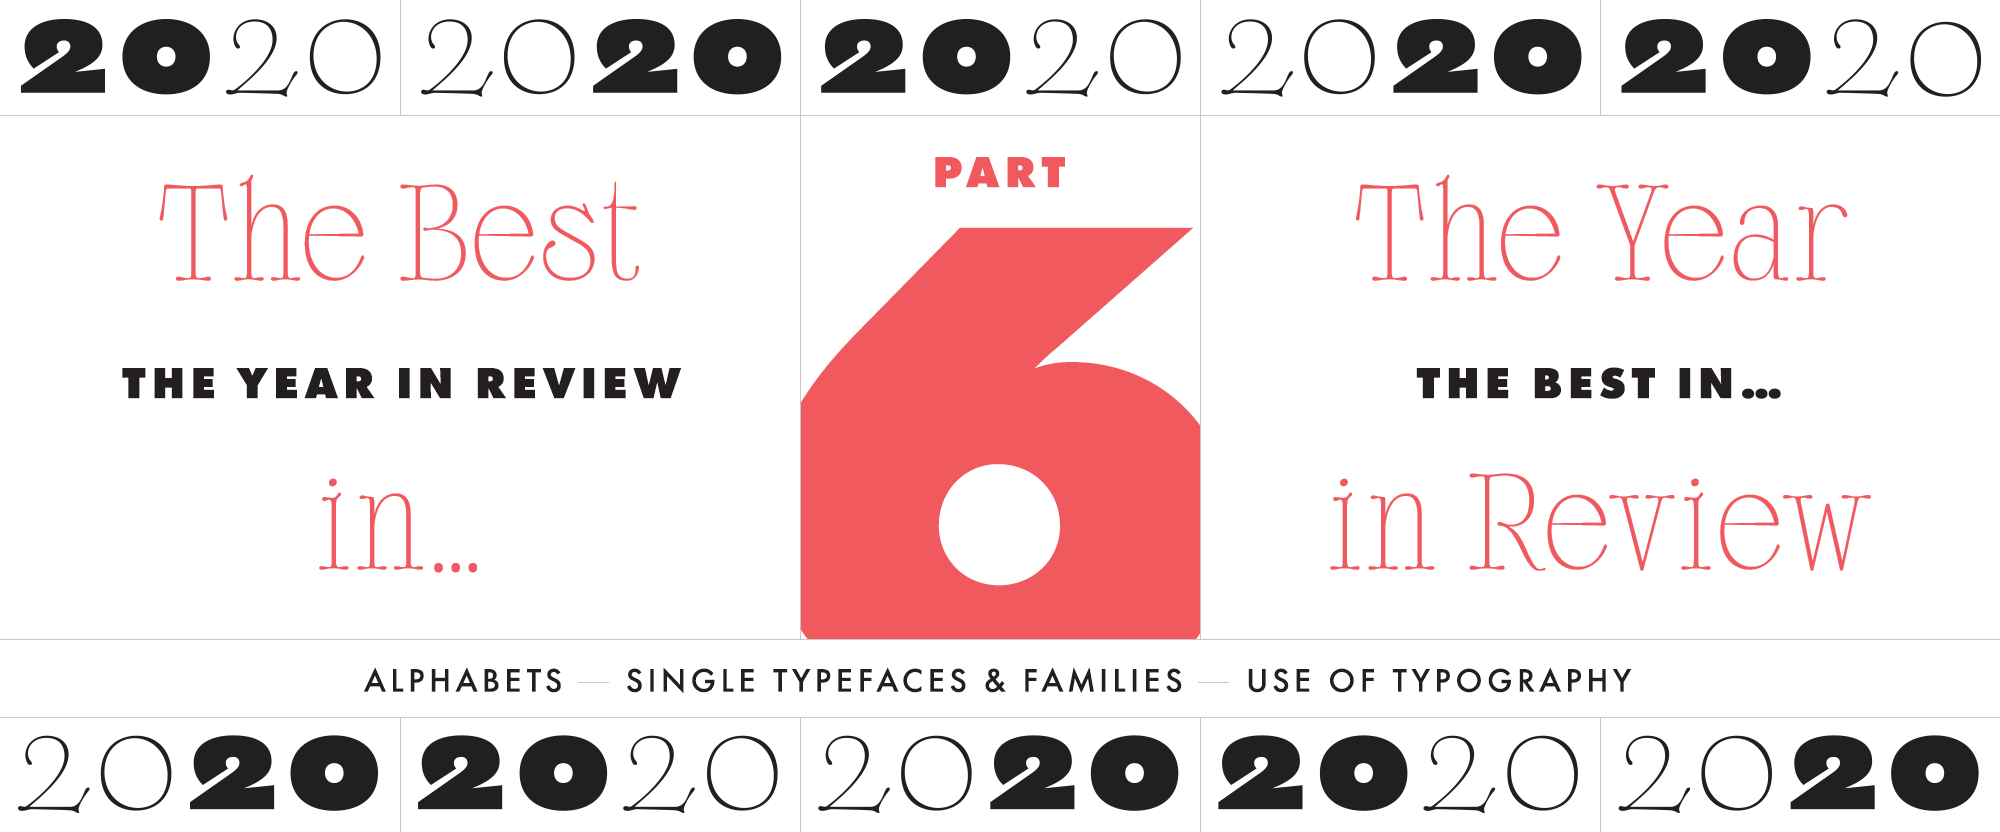 The Year in Review, Part 6: The Best in Alphabets, Single Typefaces and Families, and Use of Typography